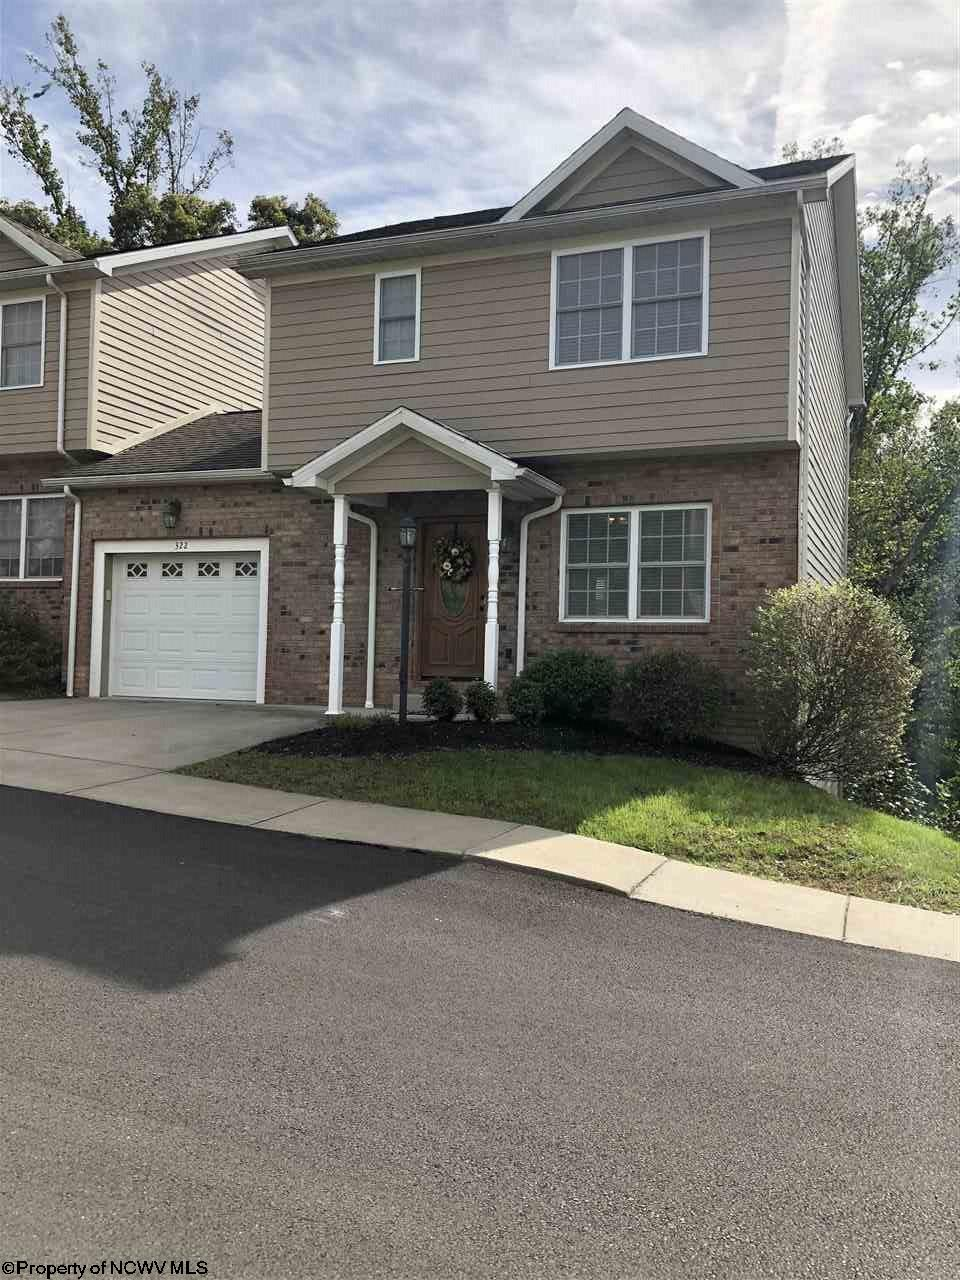 322 VILLA VIEW, MORGANTOWN, WV 26505